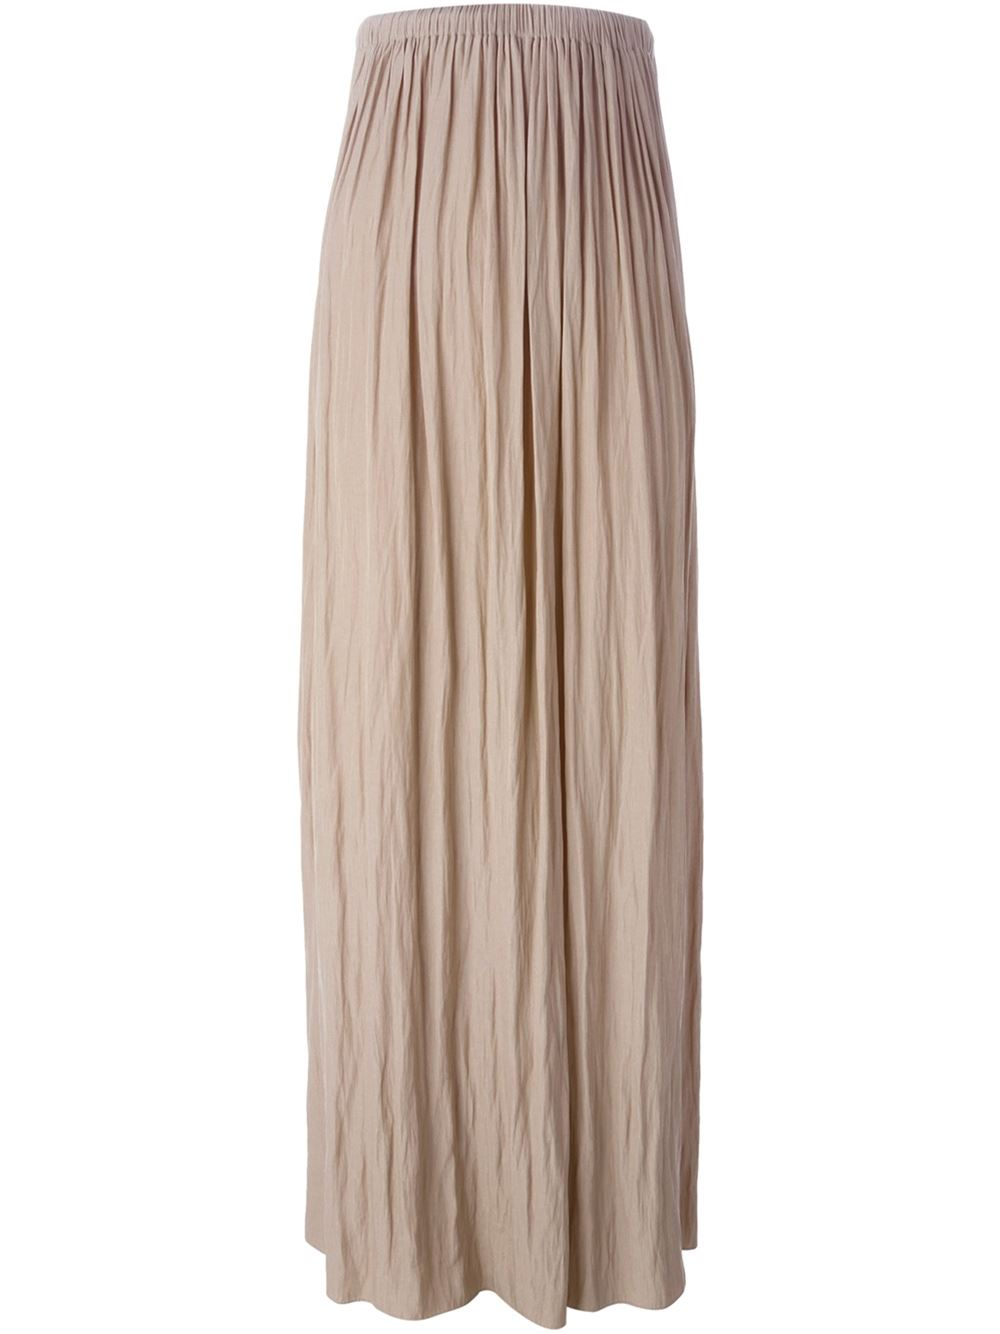 Lanvin Pleated Maxi Skirt In Beige Nude Amp Neutrals Lyst